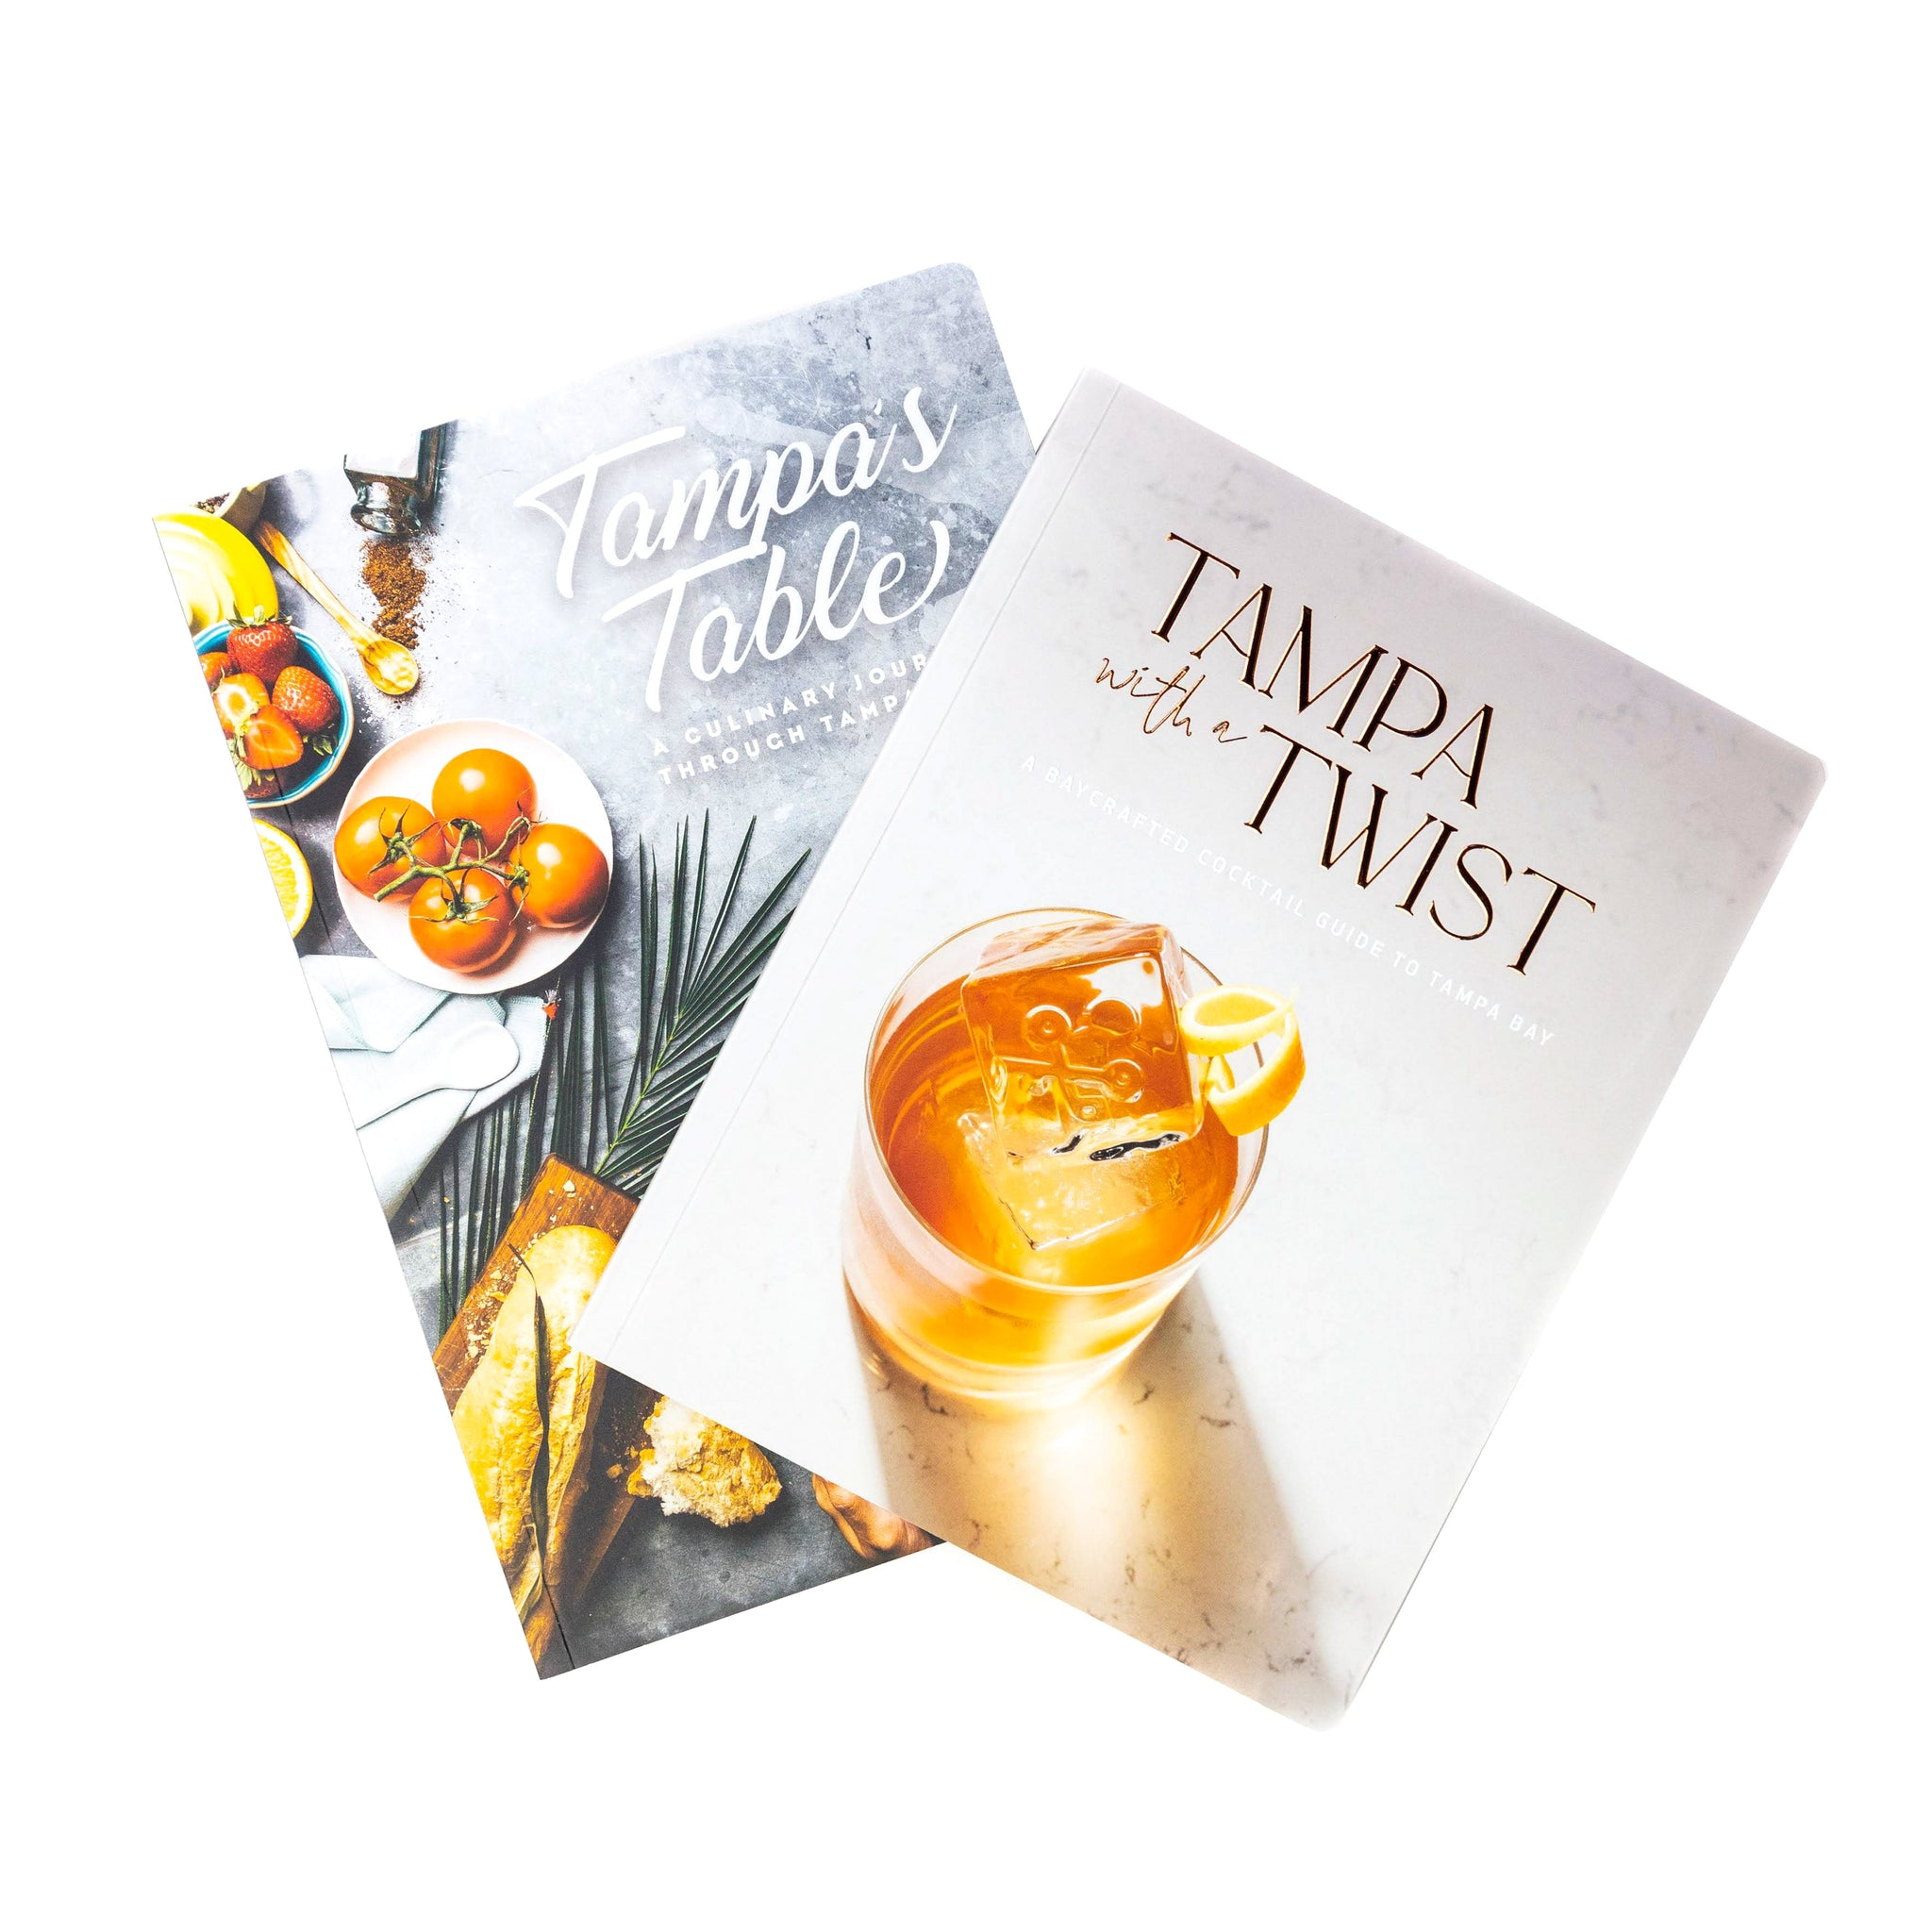 Tampa's Table & Tampa with a Twist - Exclusive Bundle